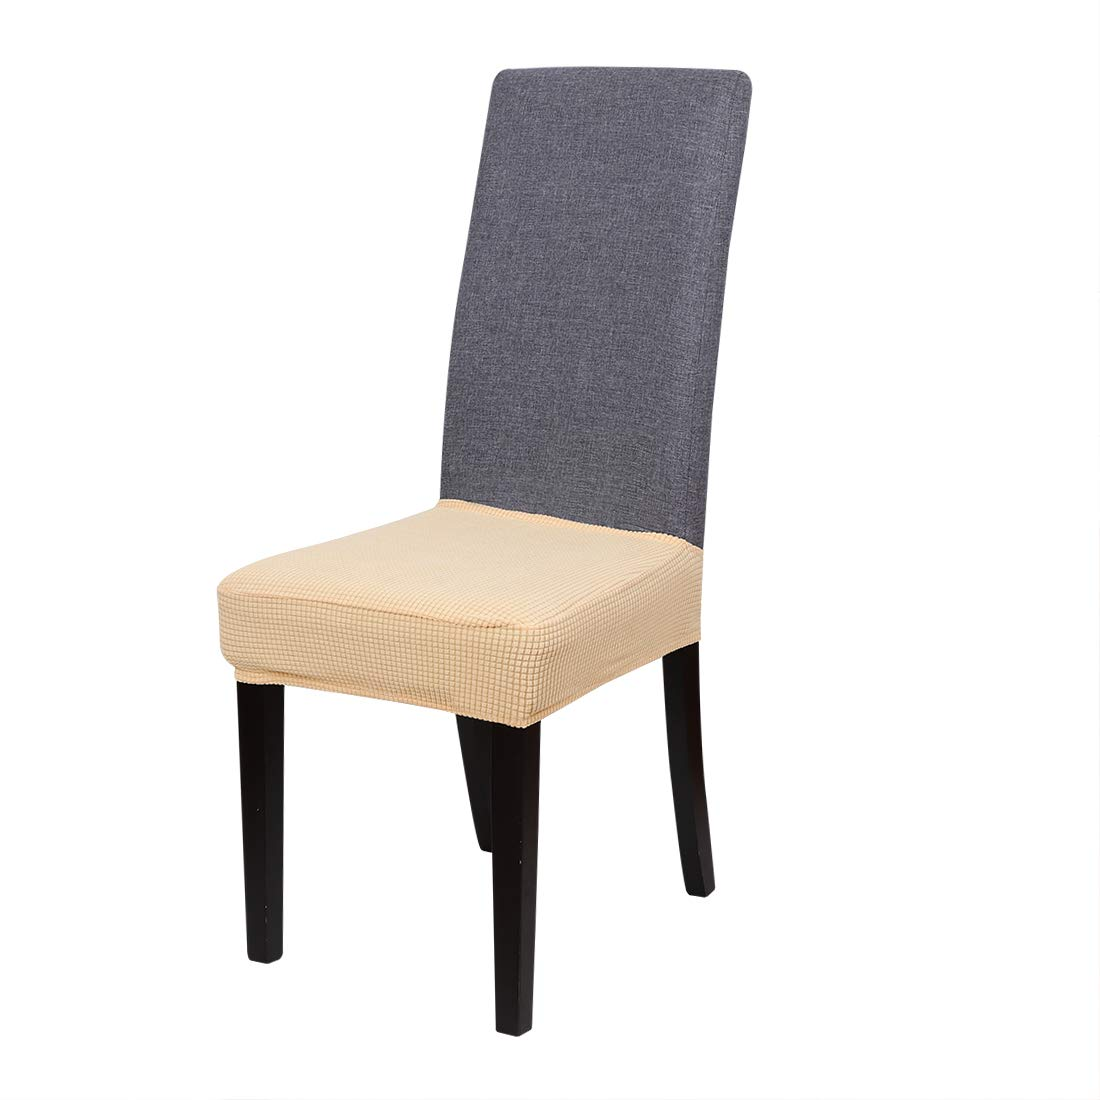 Dining Room Chair Seat Cover Slipcover Spandex Stretch Home Decor Banquet Party